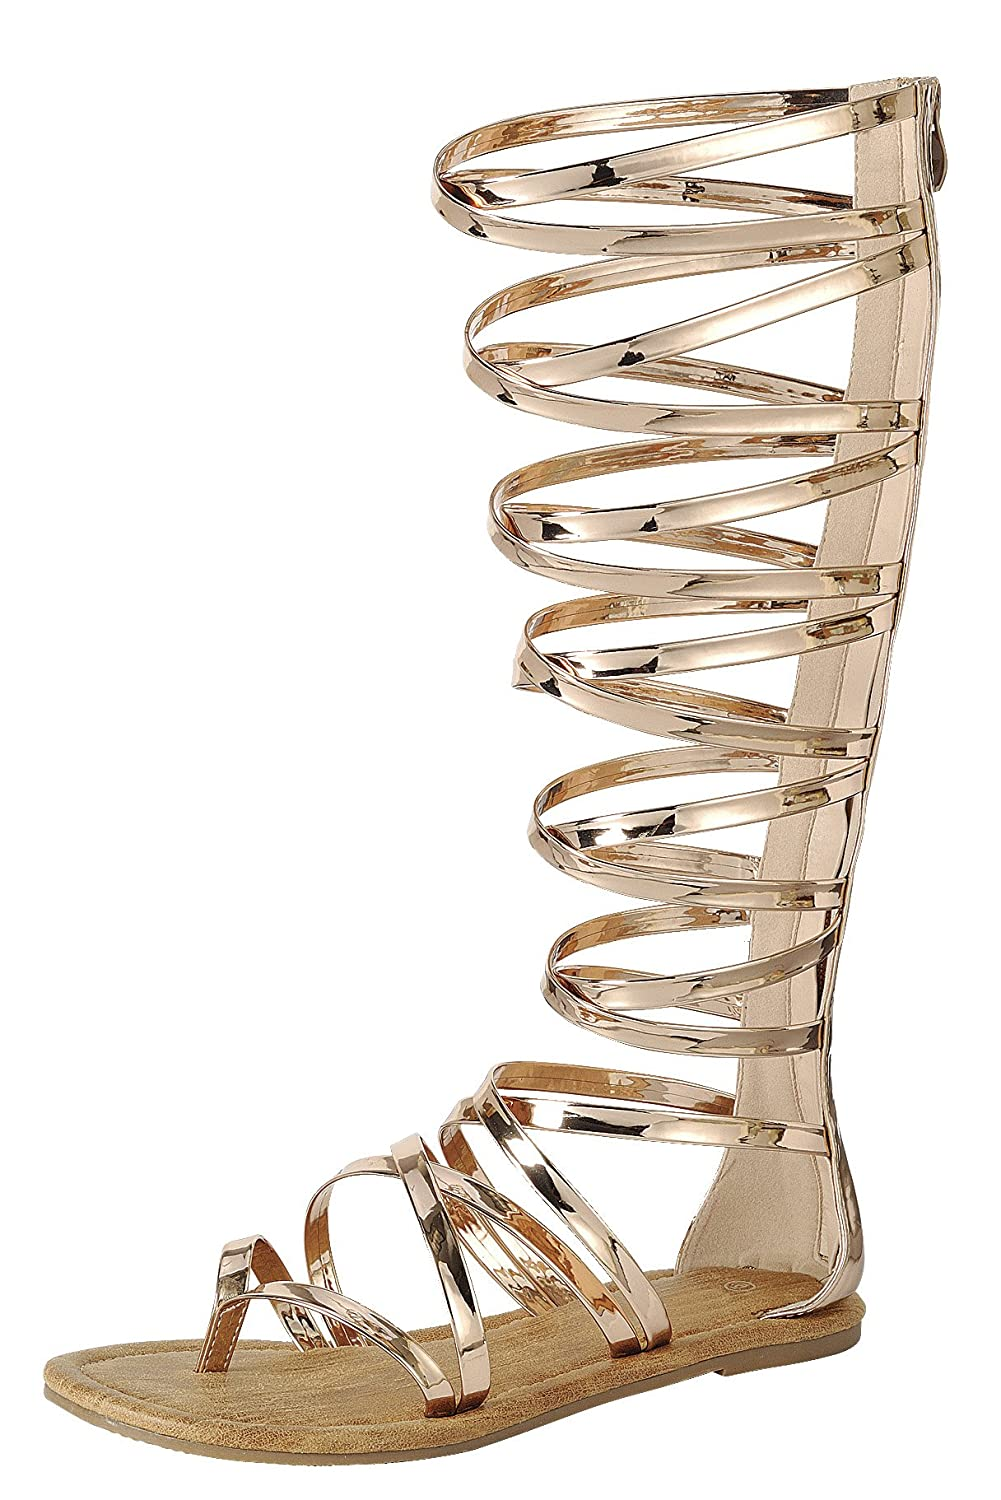 Women's Rose Gold Gladiator Crisscross Strappy Knee-High Flat Sandals - DeluxeAdultCostumes.com